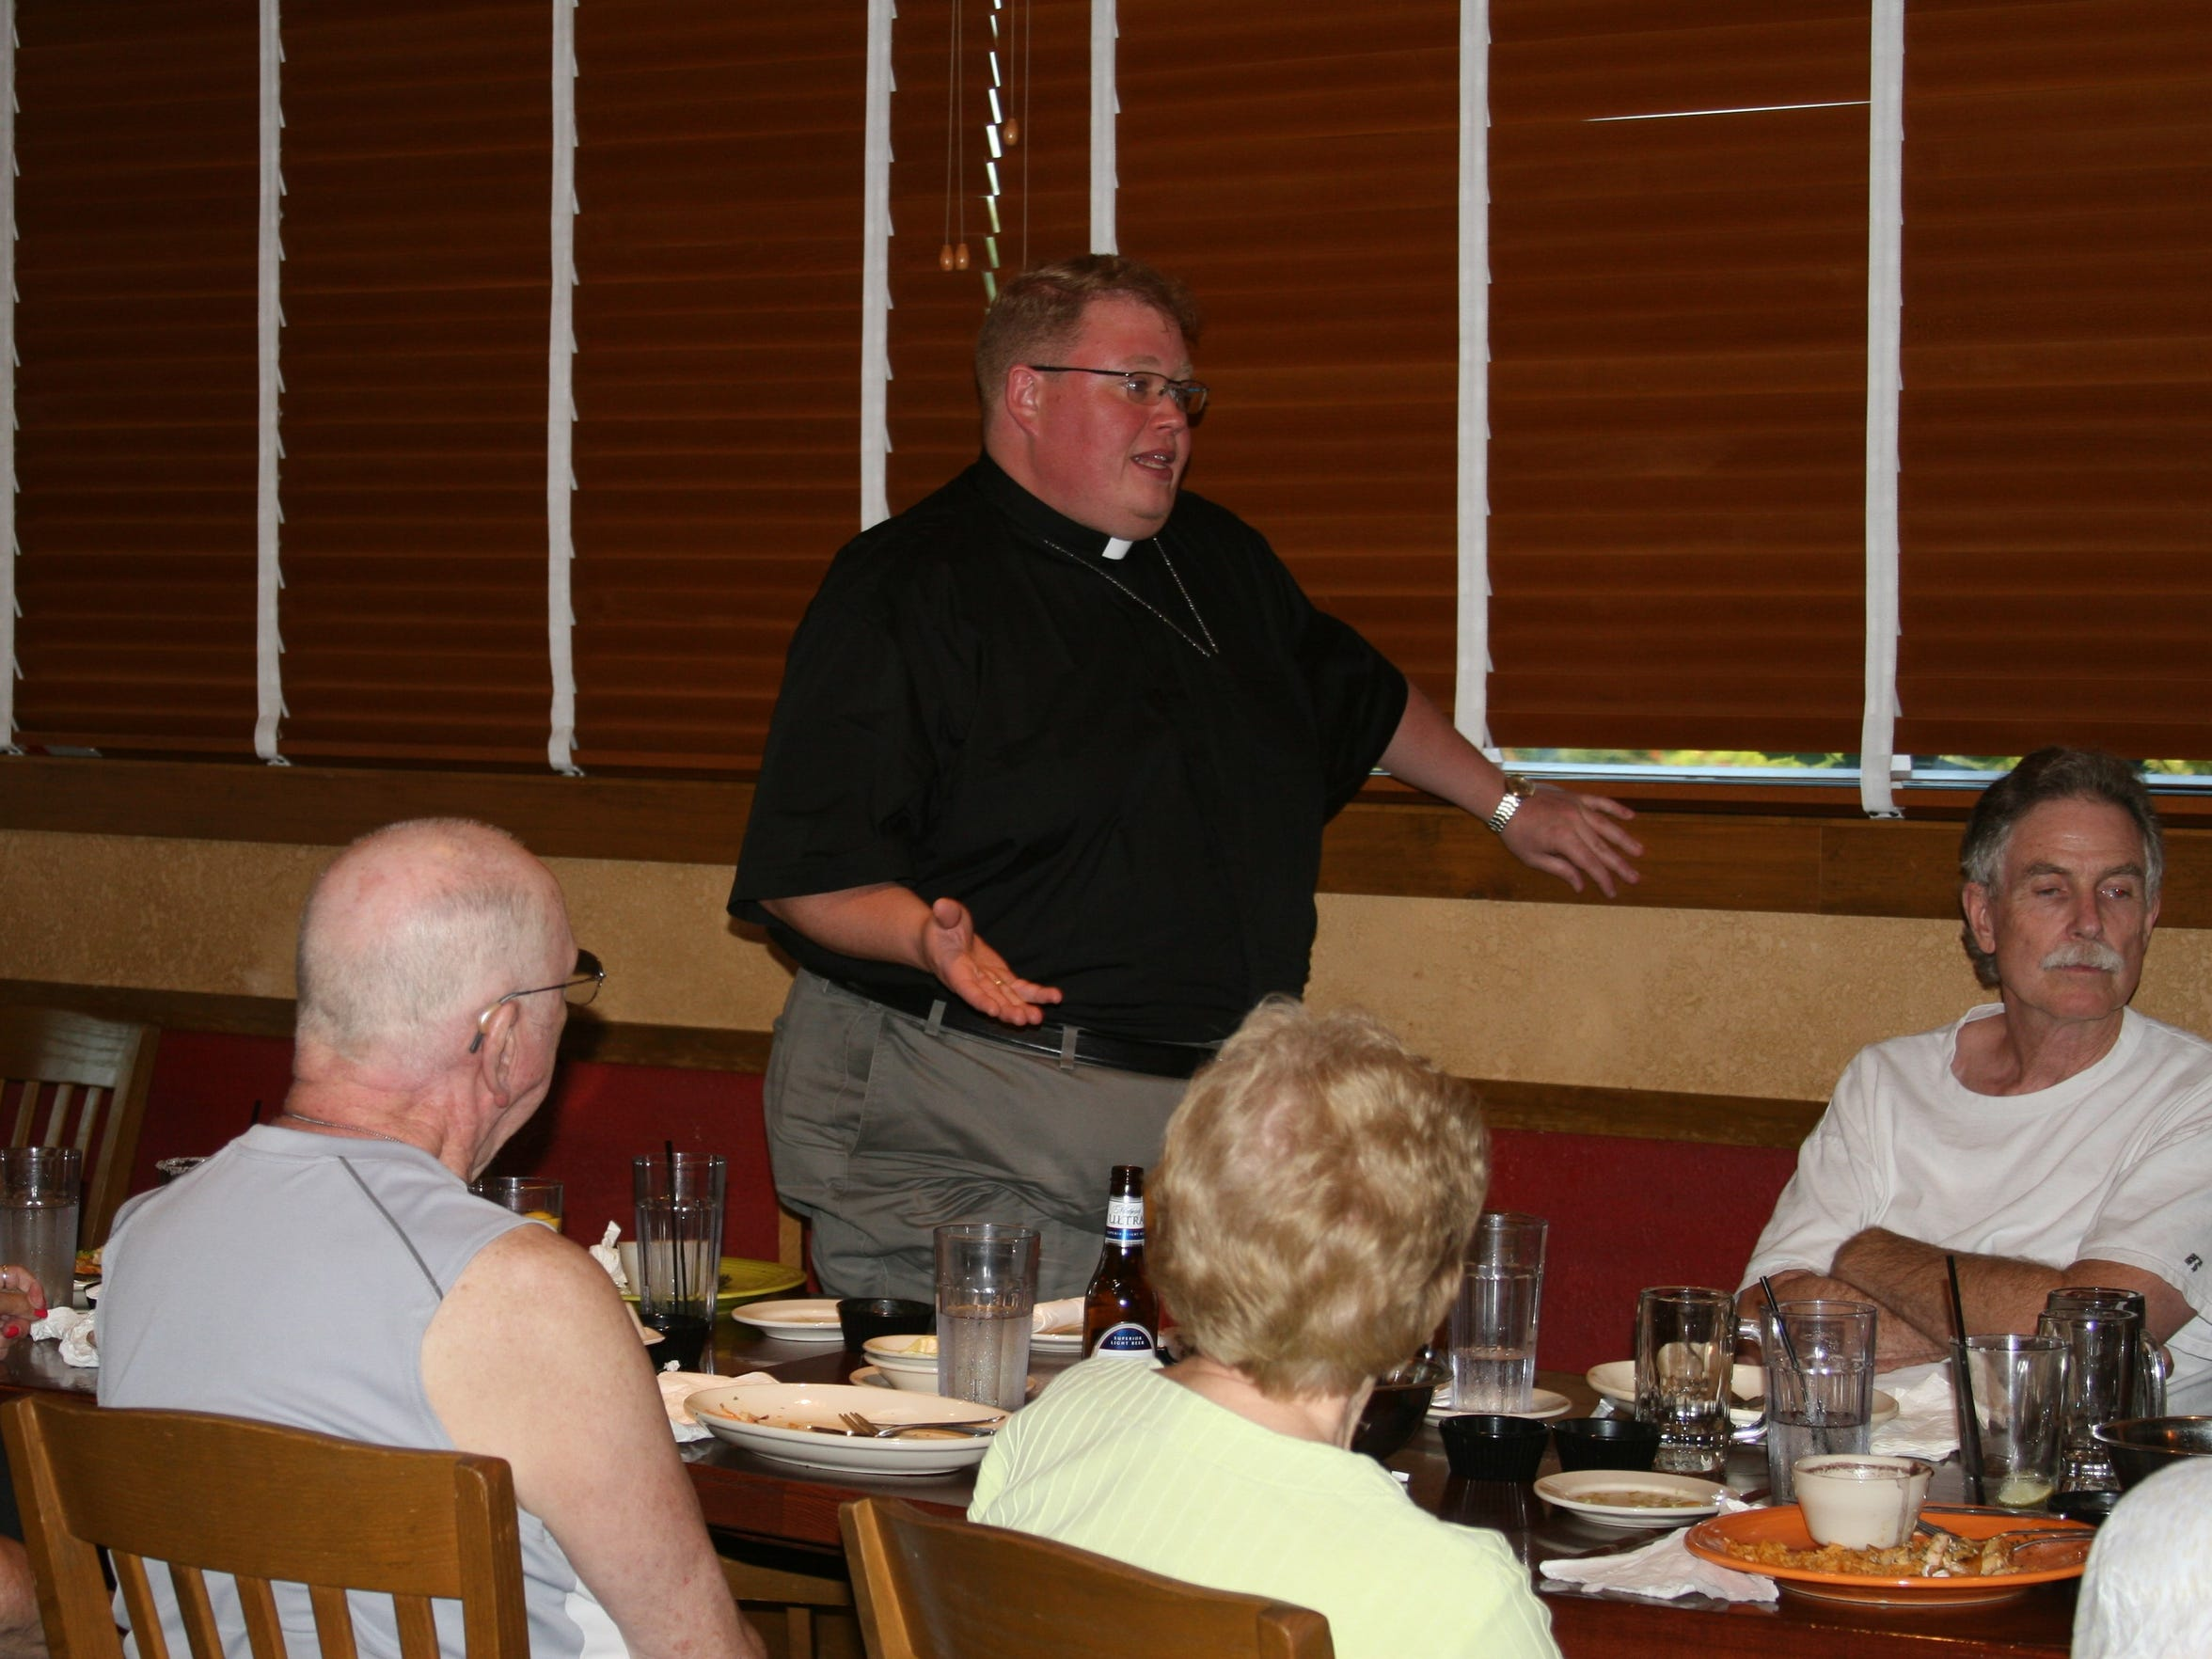 Father Kevin Gore talks to his congregants during his first Pub Theology group on Aug. 1 at El Chico's. Father Kevin joined from St. Andrew's Episcopal Church on July 1 of this year and is continuing the Pub Theology tradition that was started at the church.